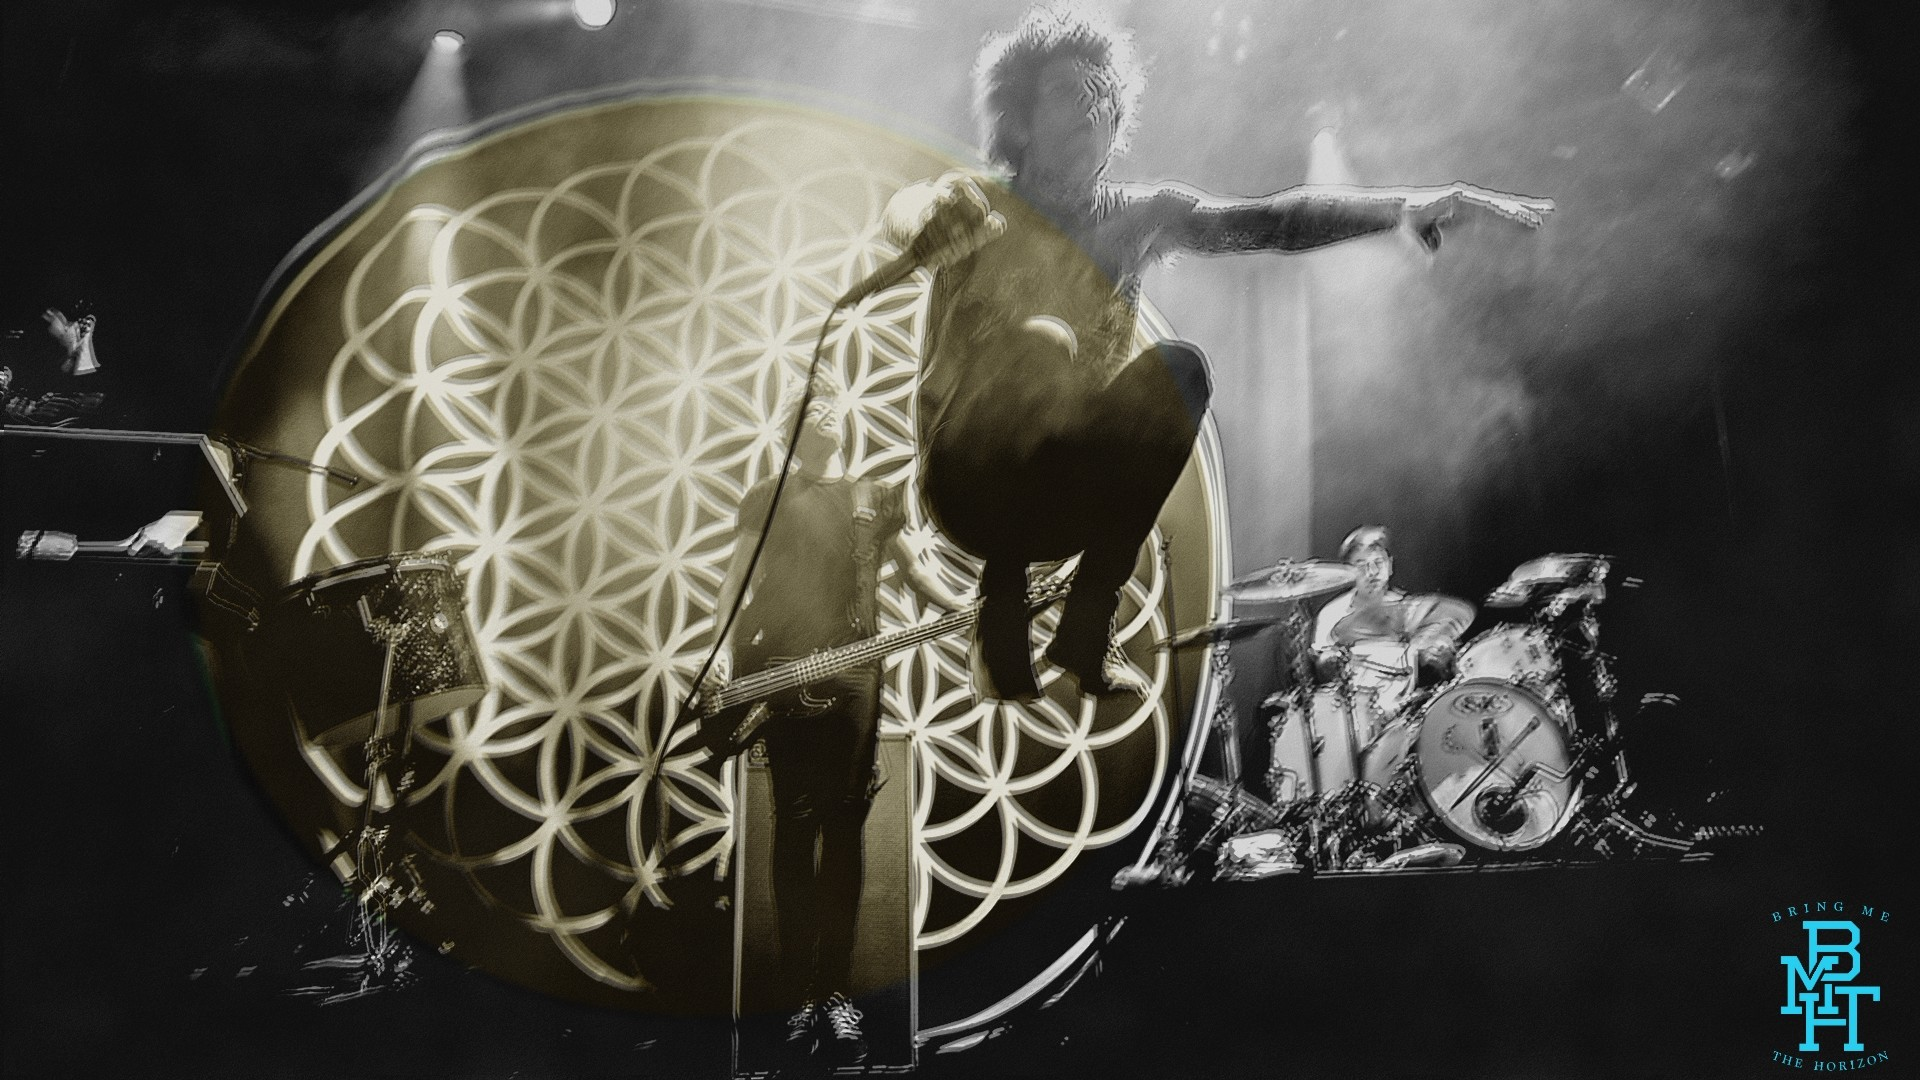 Bring Me The Horizon Wallpaper 2018 Wallpapertag